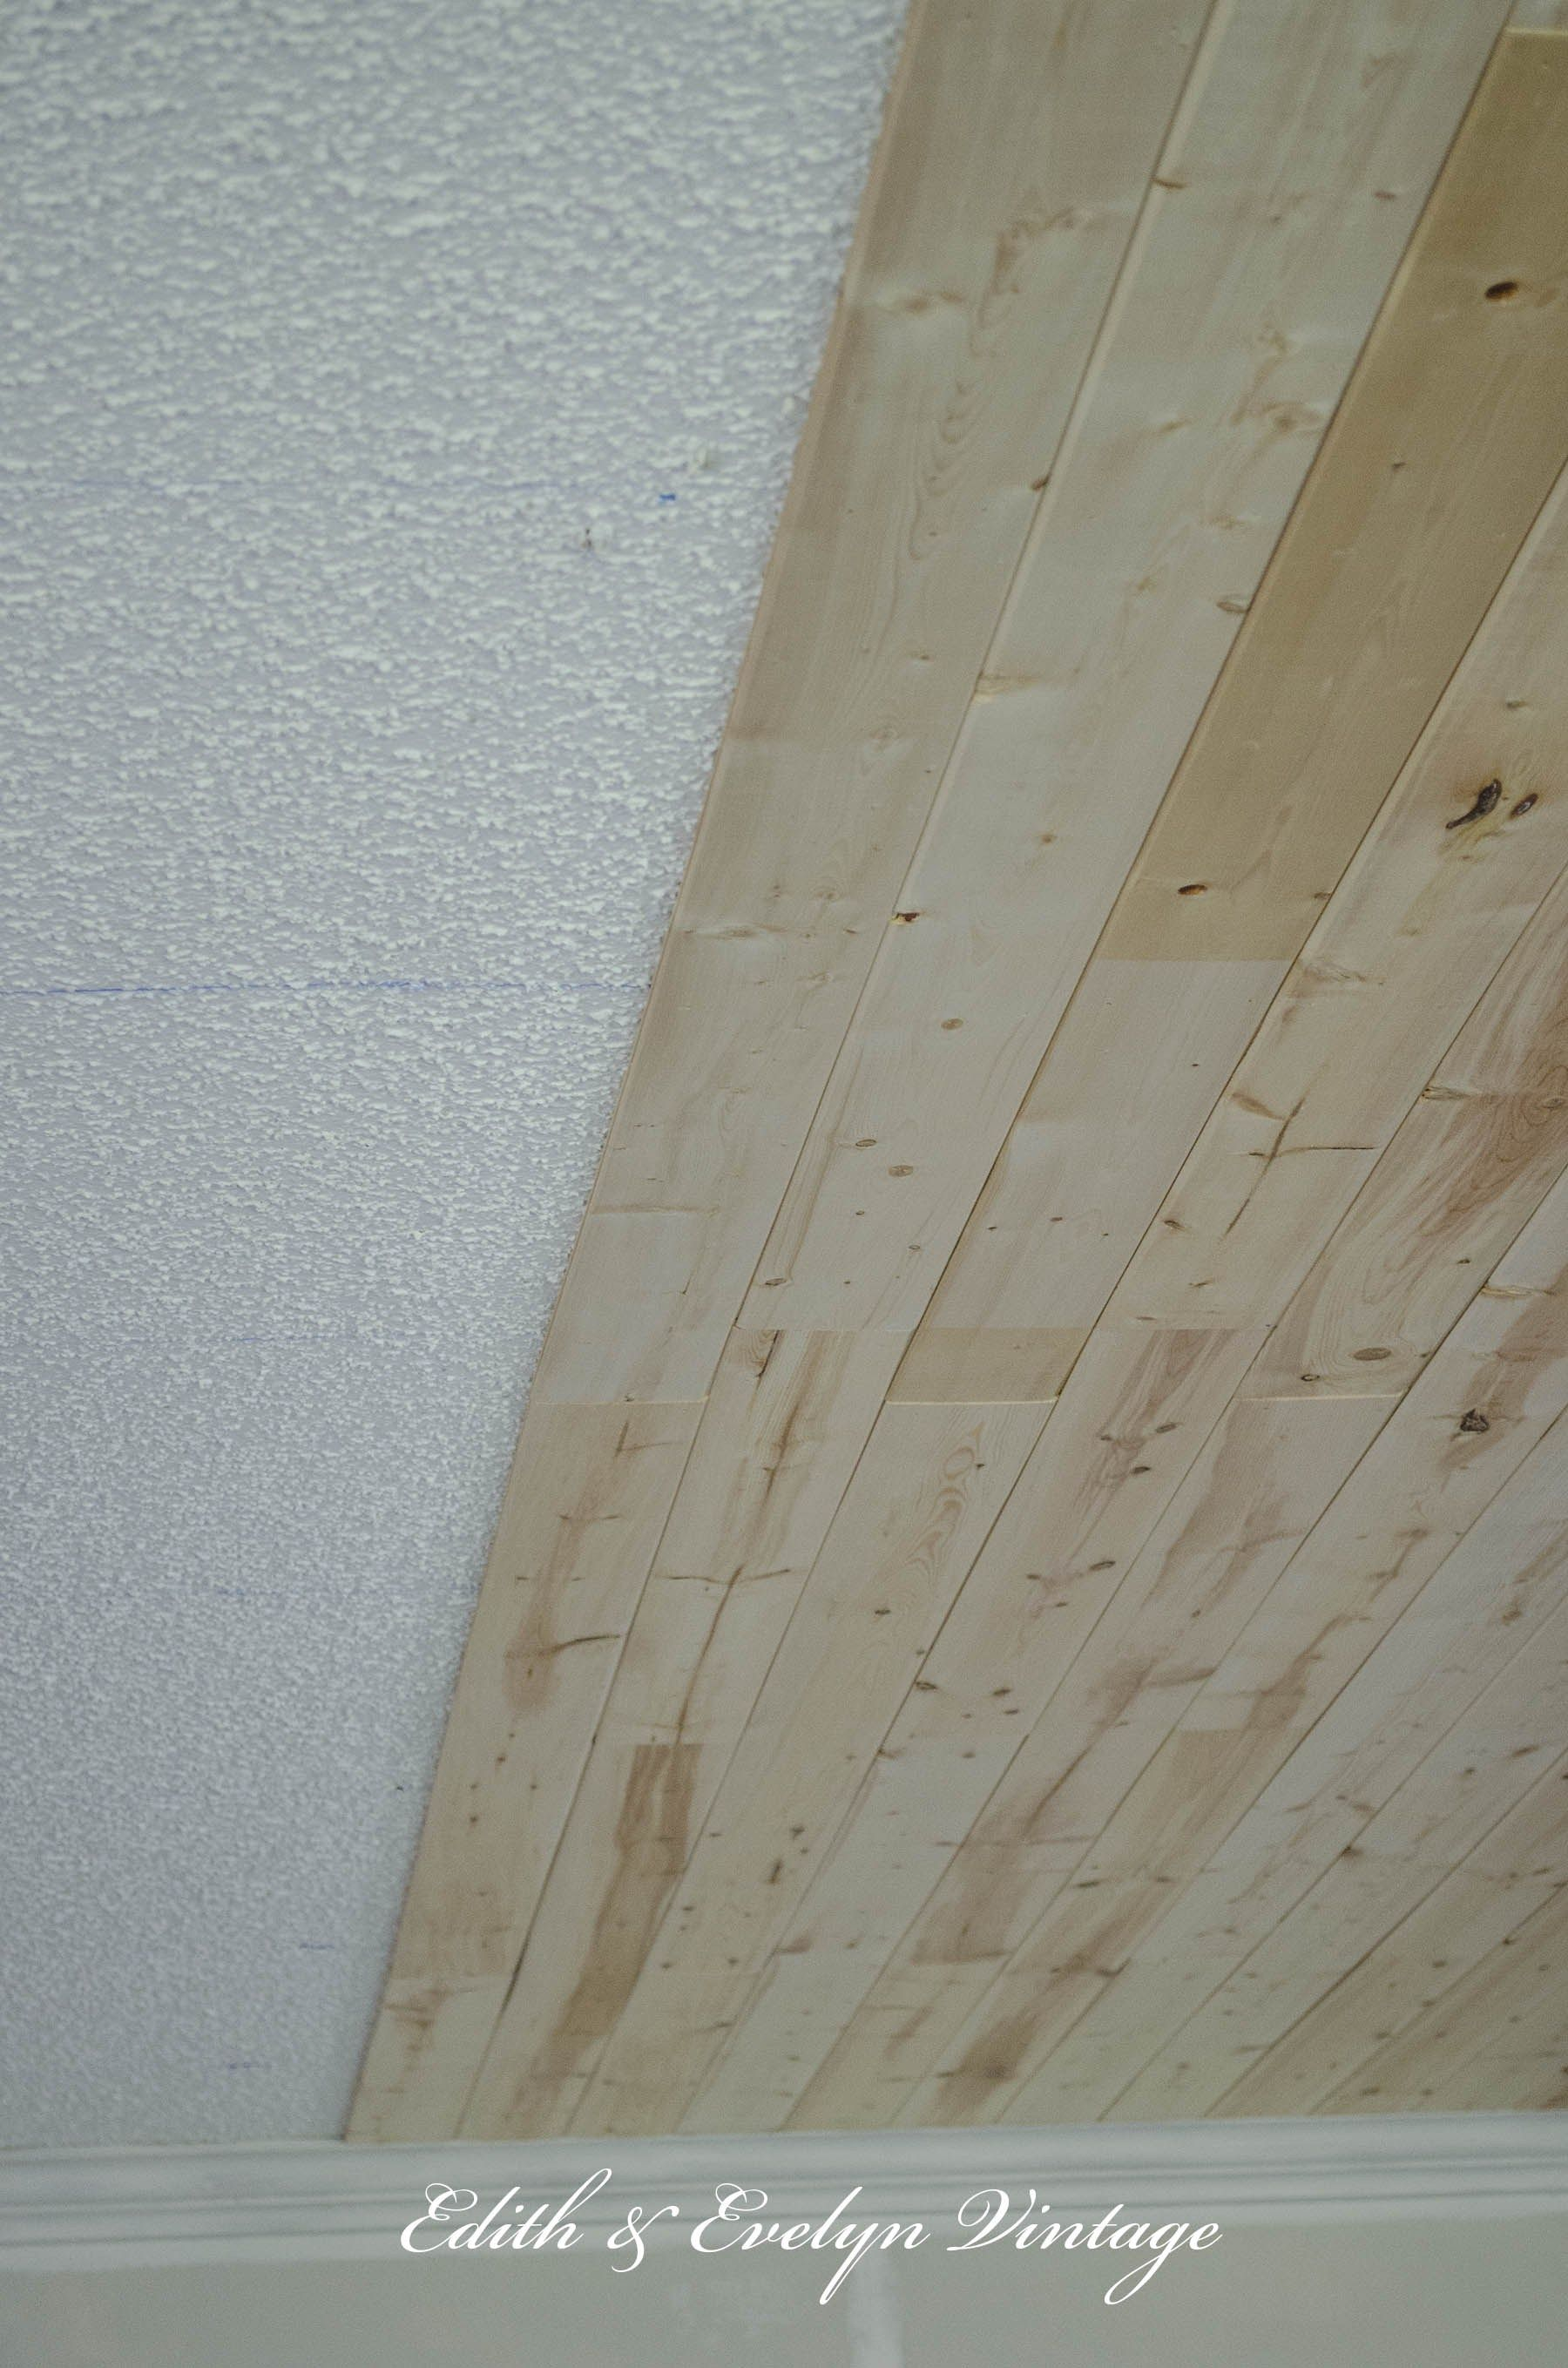 How To Plank A Popcorn Ceiling With Lightweight Tongue And Groove Wood Planks Popcorn Ceiling Diy Home Improvement Home Projects